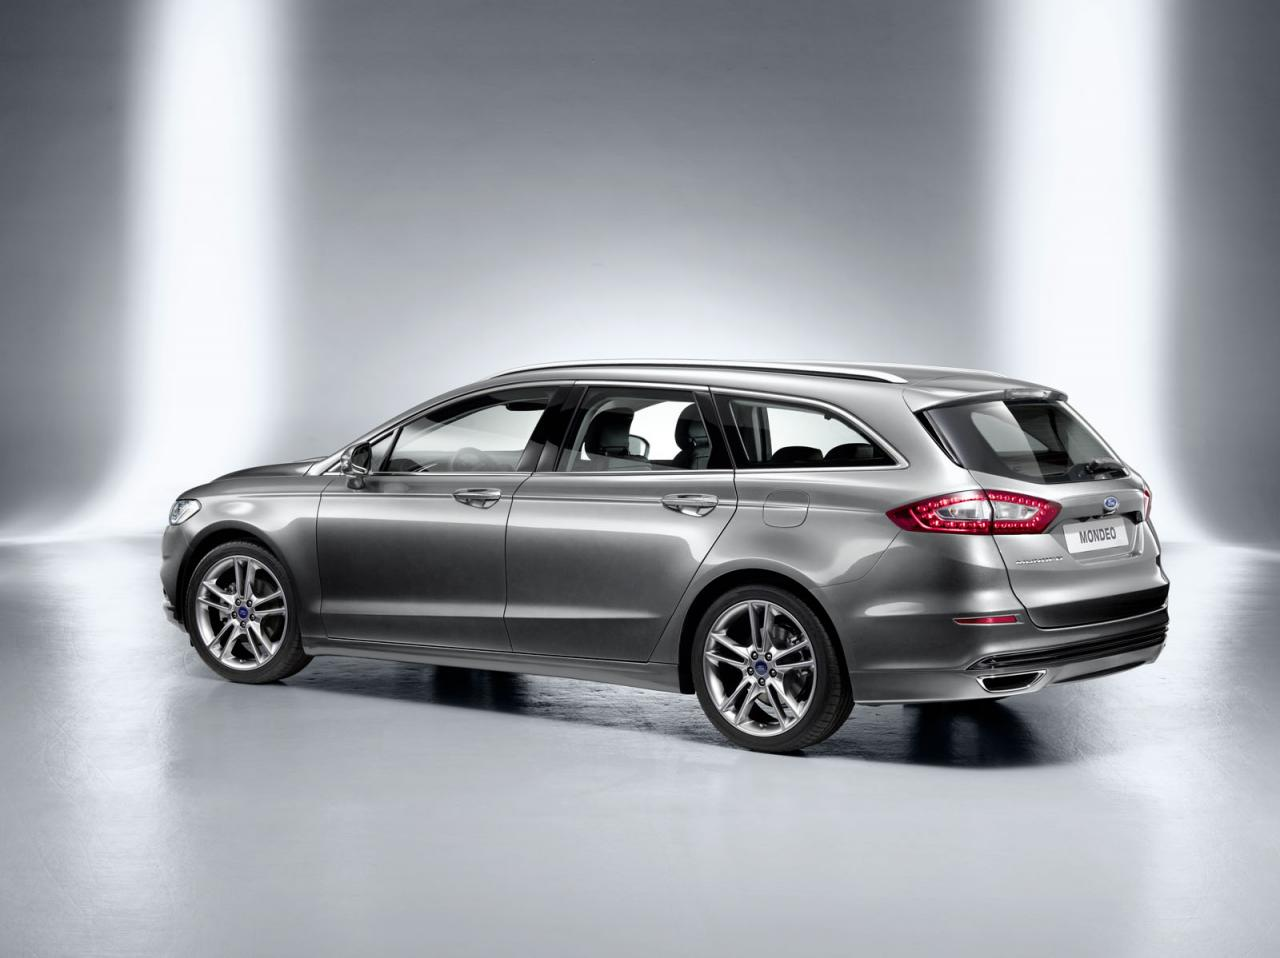 new ford mondeo release date updated cars life. Black Bedroom Furniture Sets. Home Design Ideas